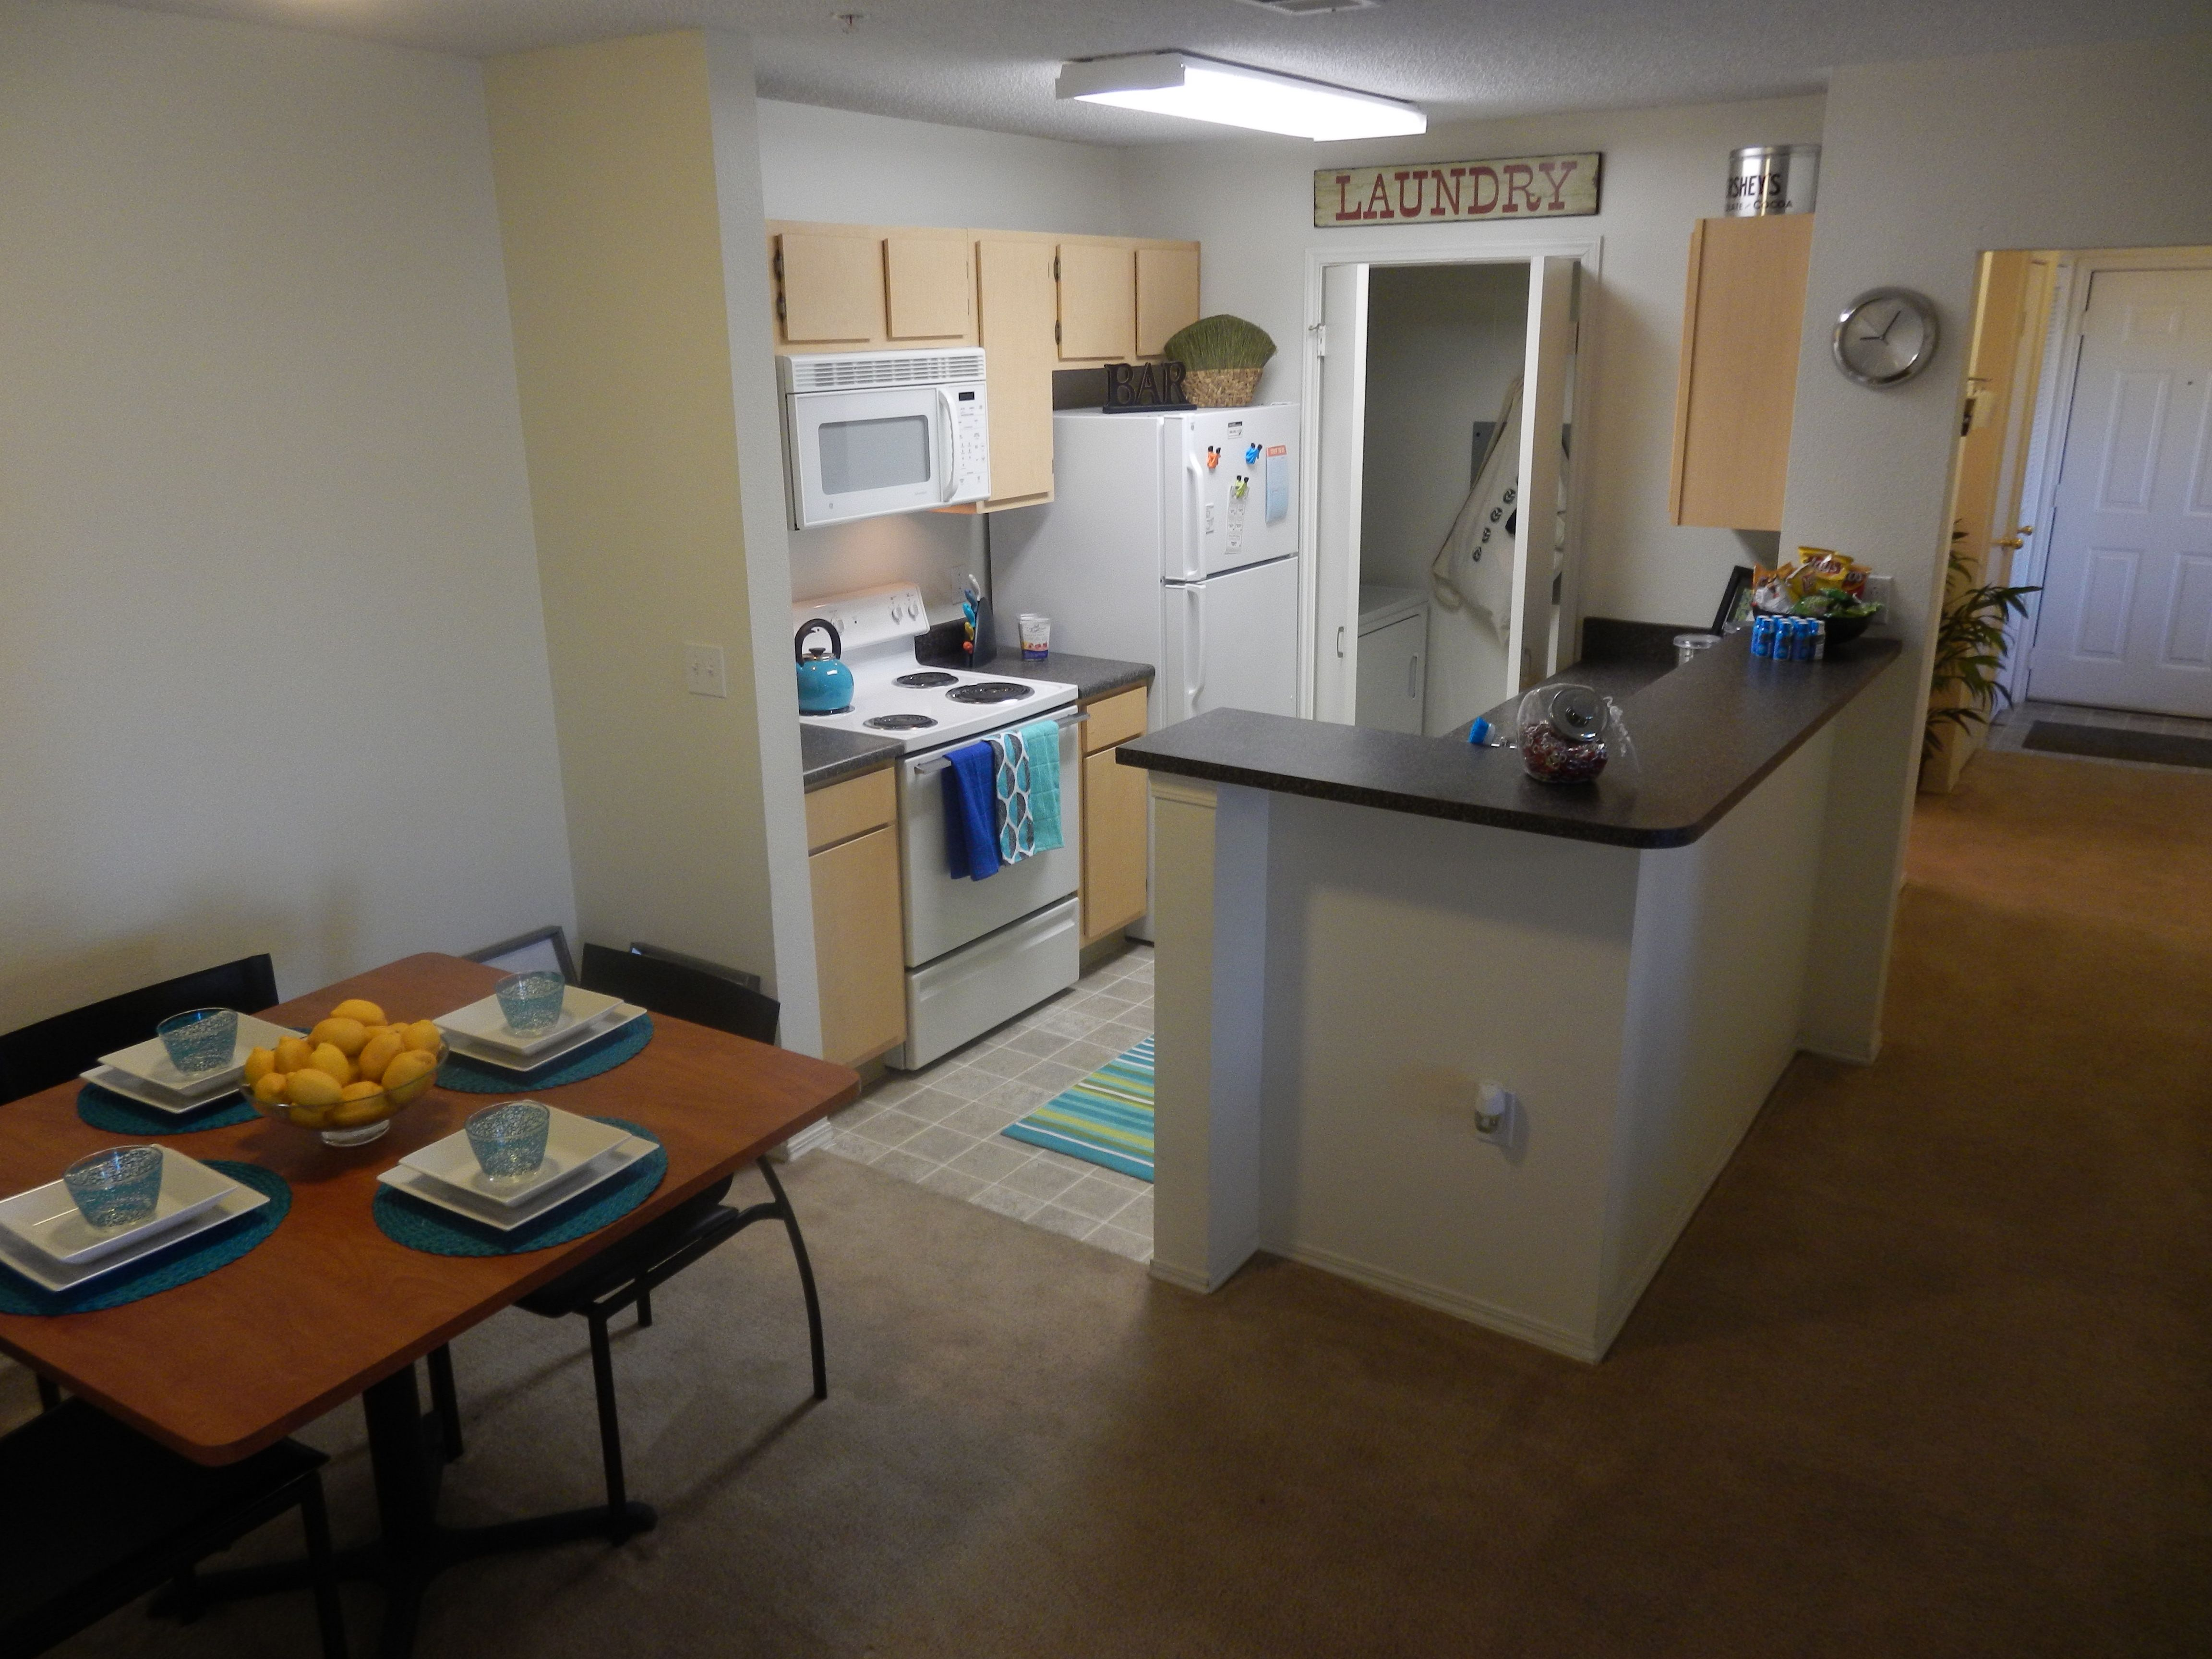 Spacious Kitchen Fully Washer And Dryer Www Ramspointe Com Spacious Kitchens 4 Bedroom Apartments Student Living